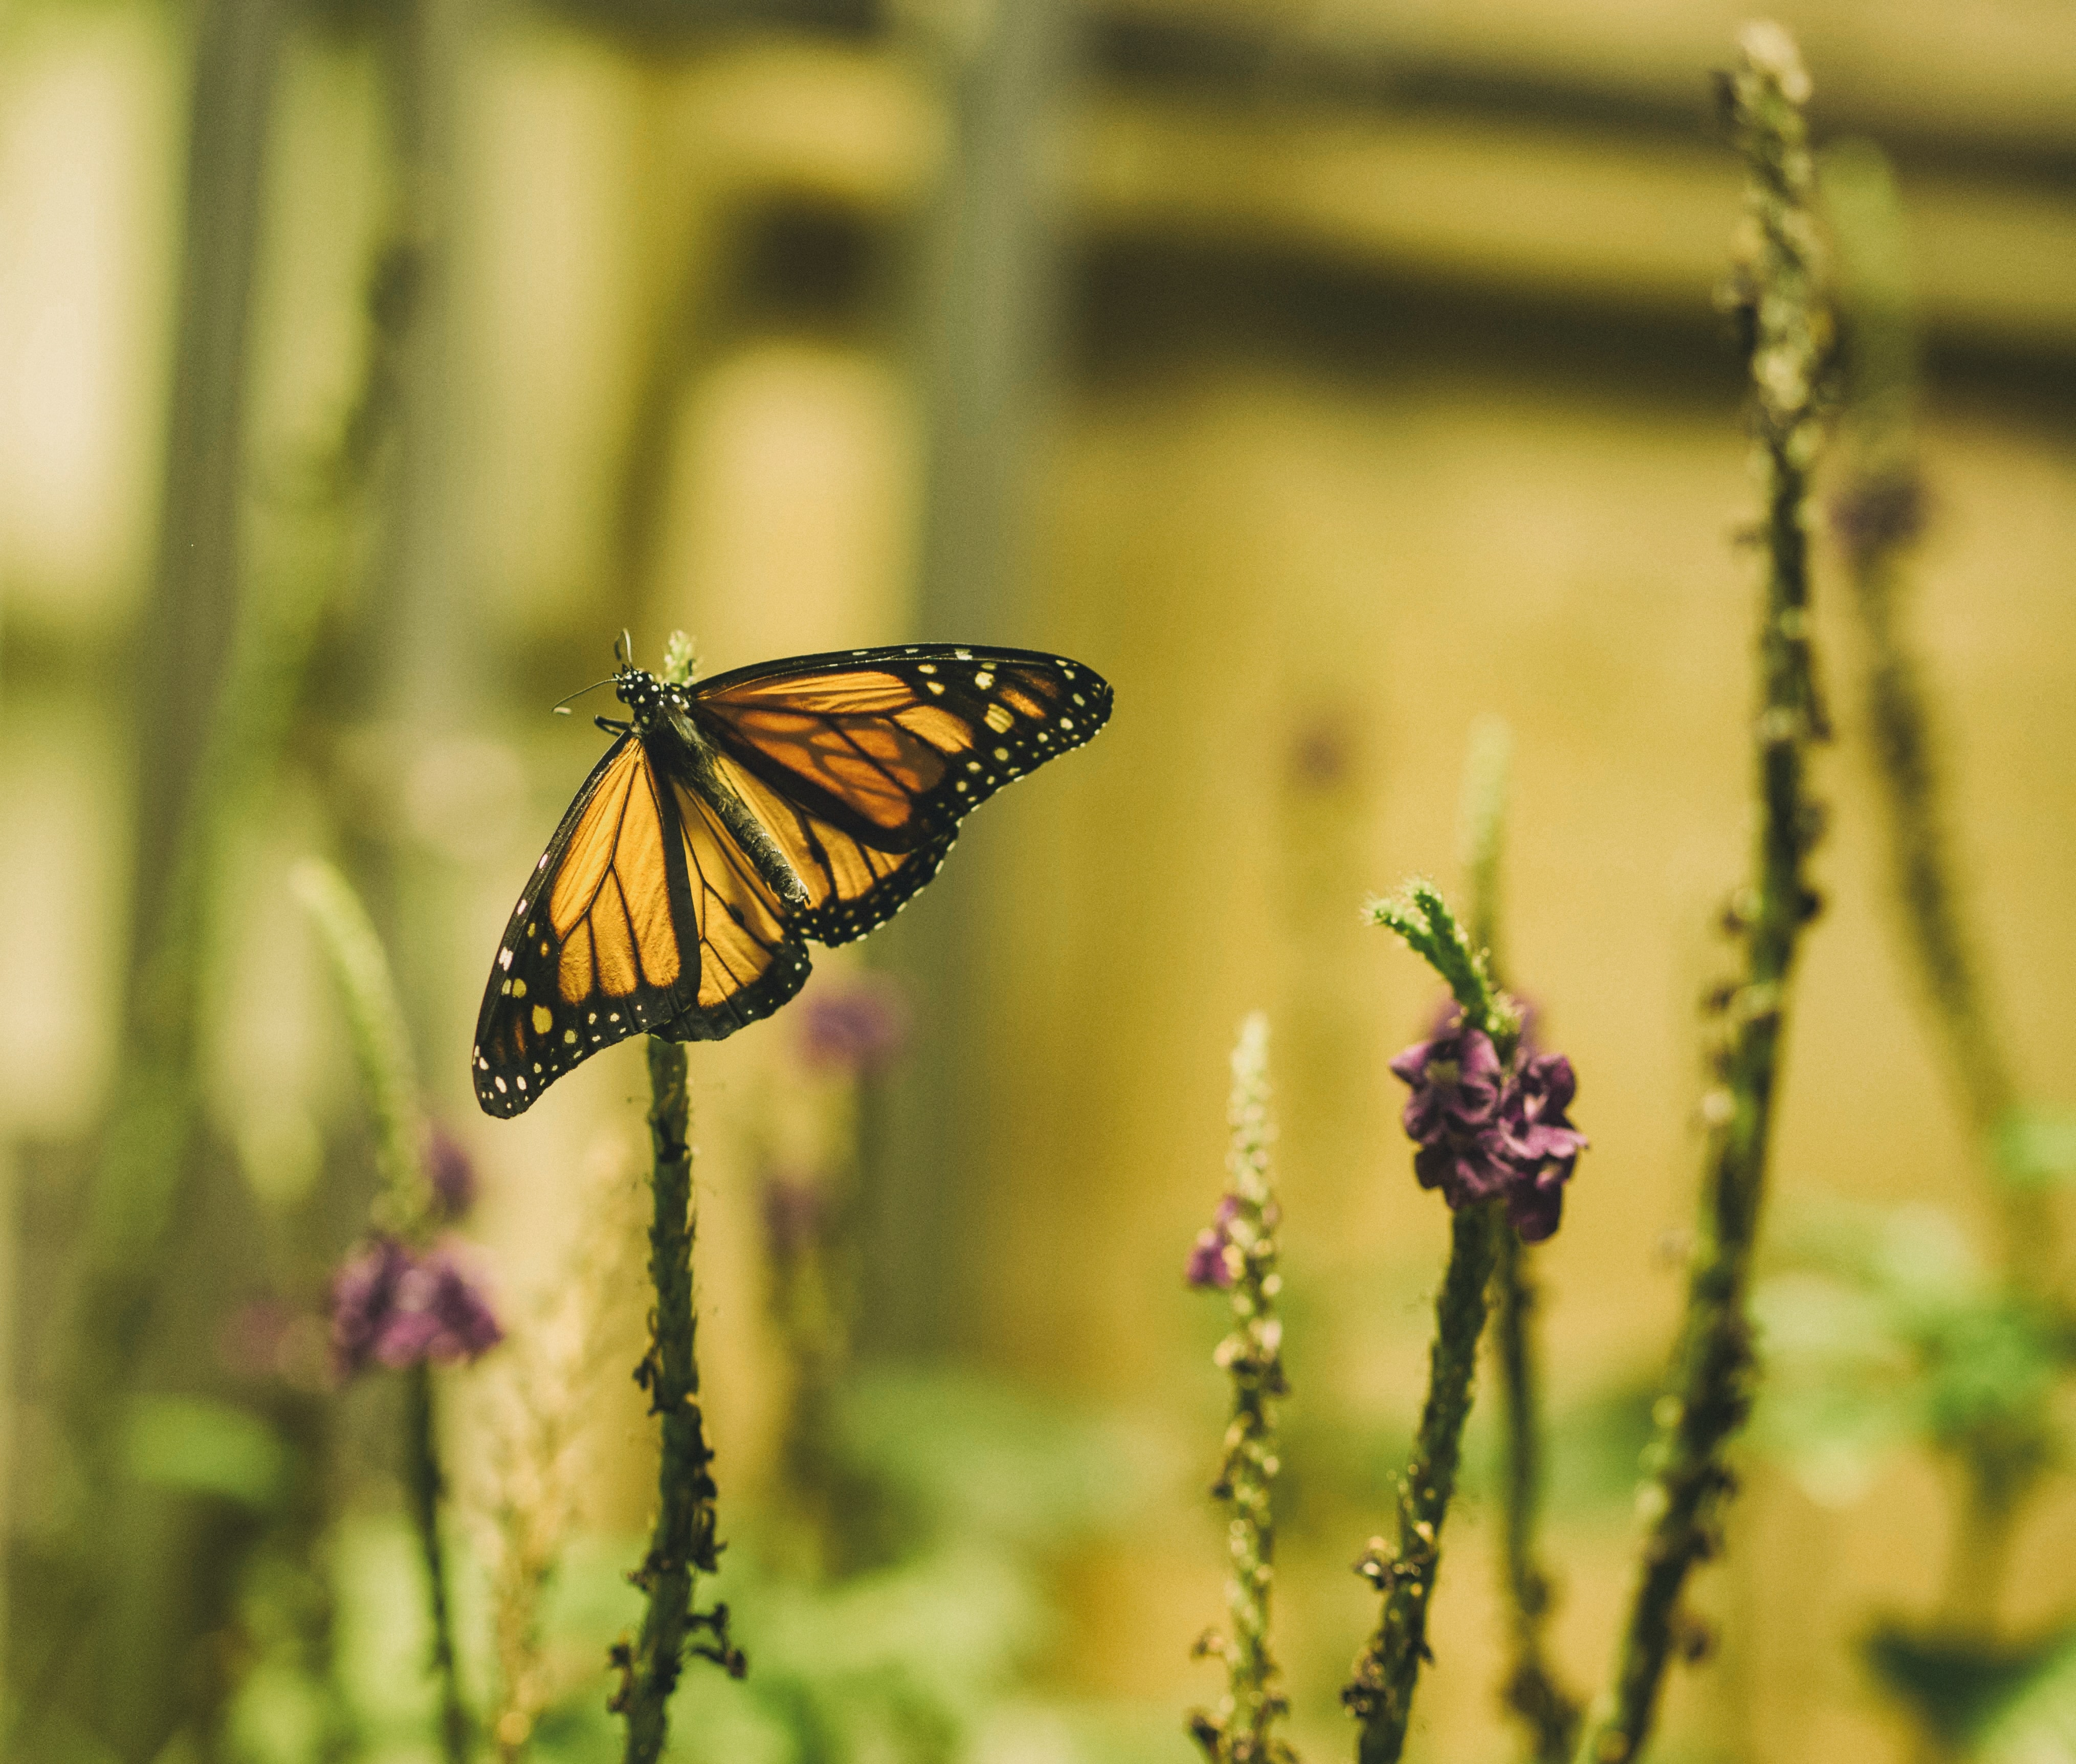 brown and black butterfly on plant